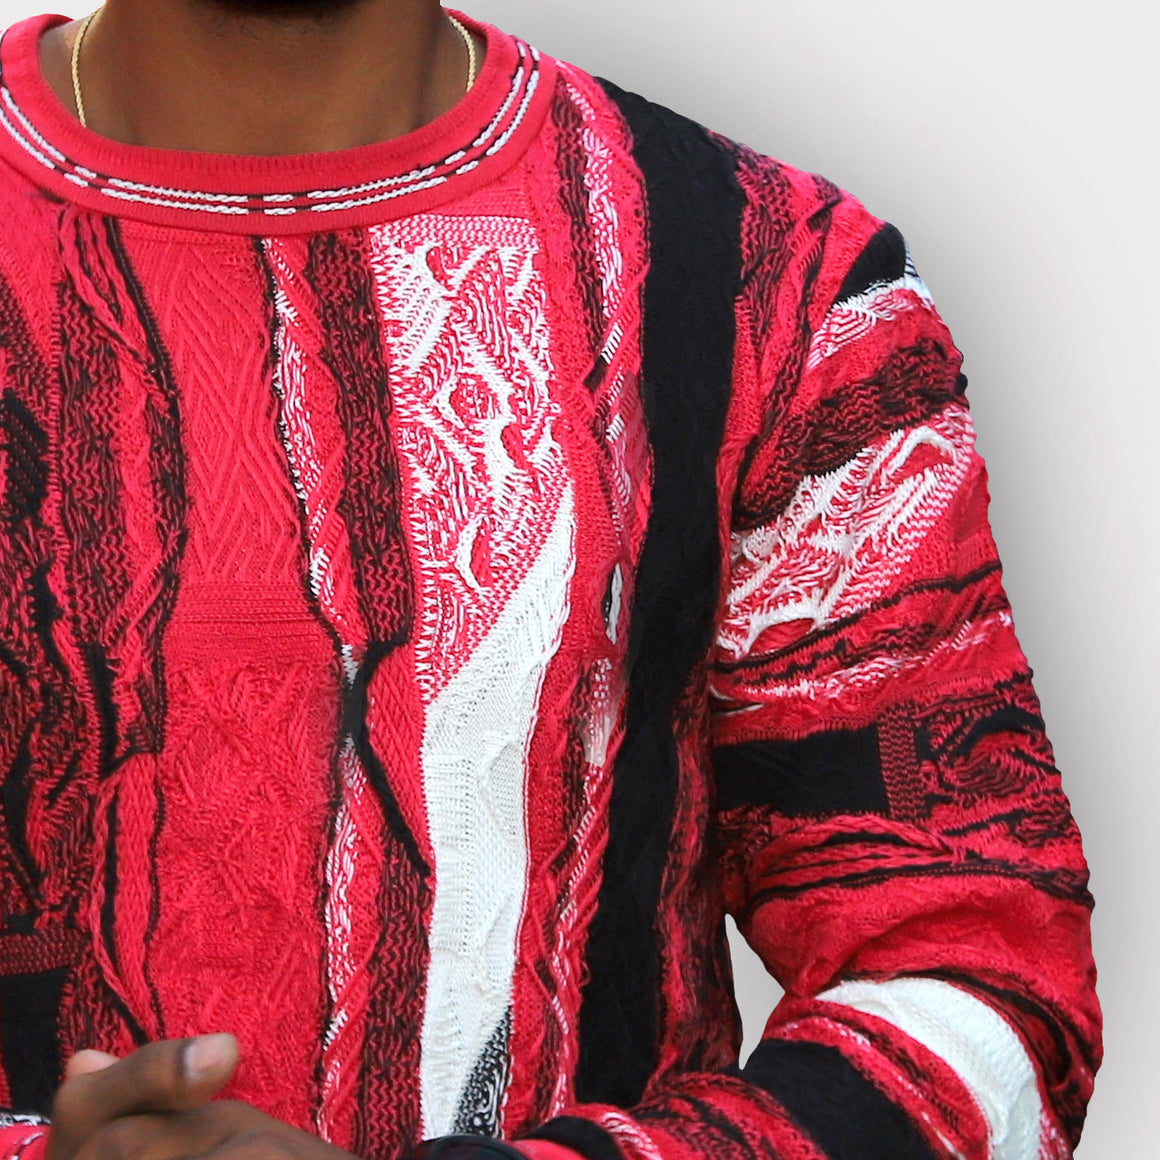 COOGI RED AND BLACK 50 CREWNECK, LIMITED EDITION